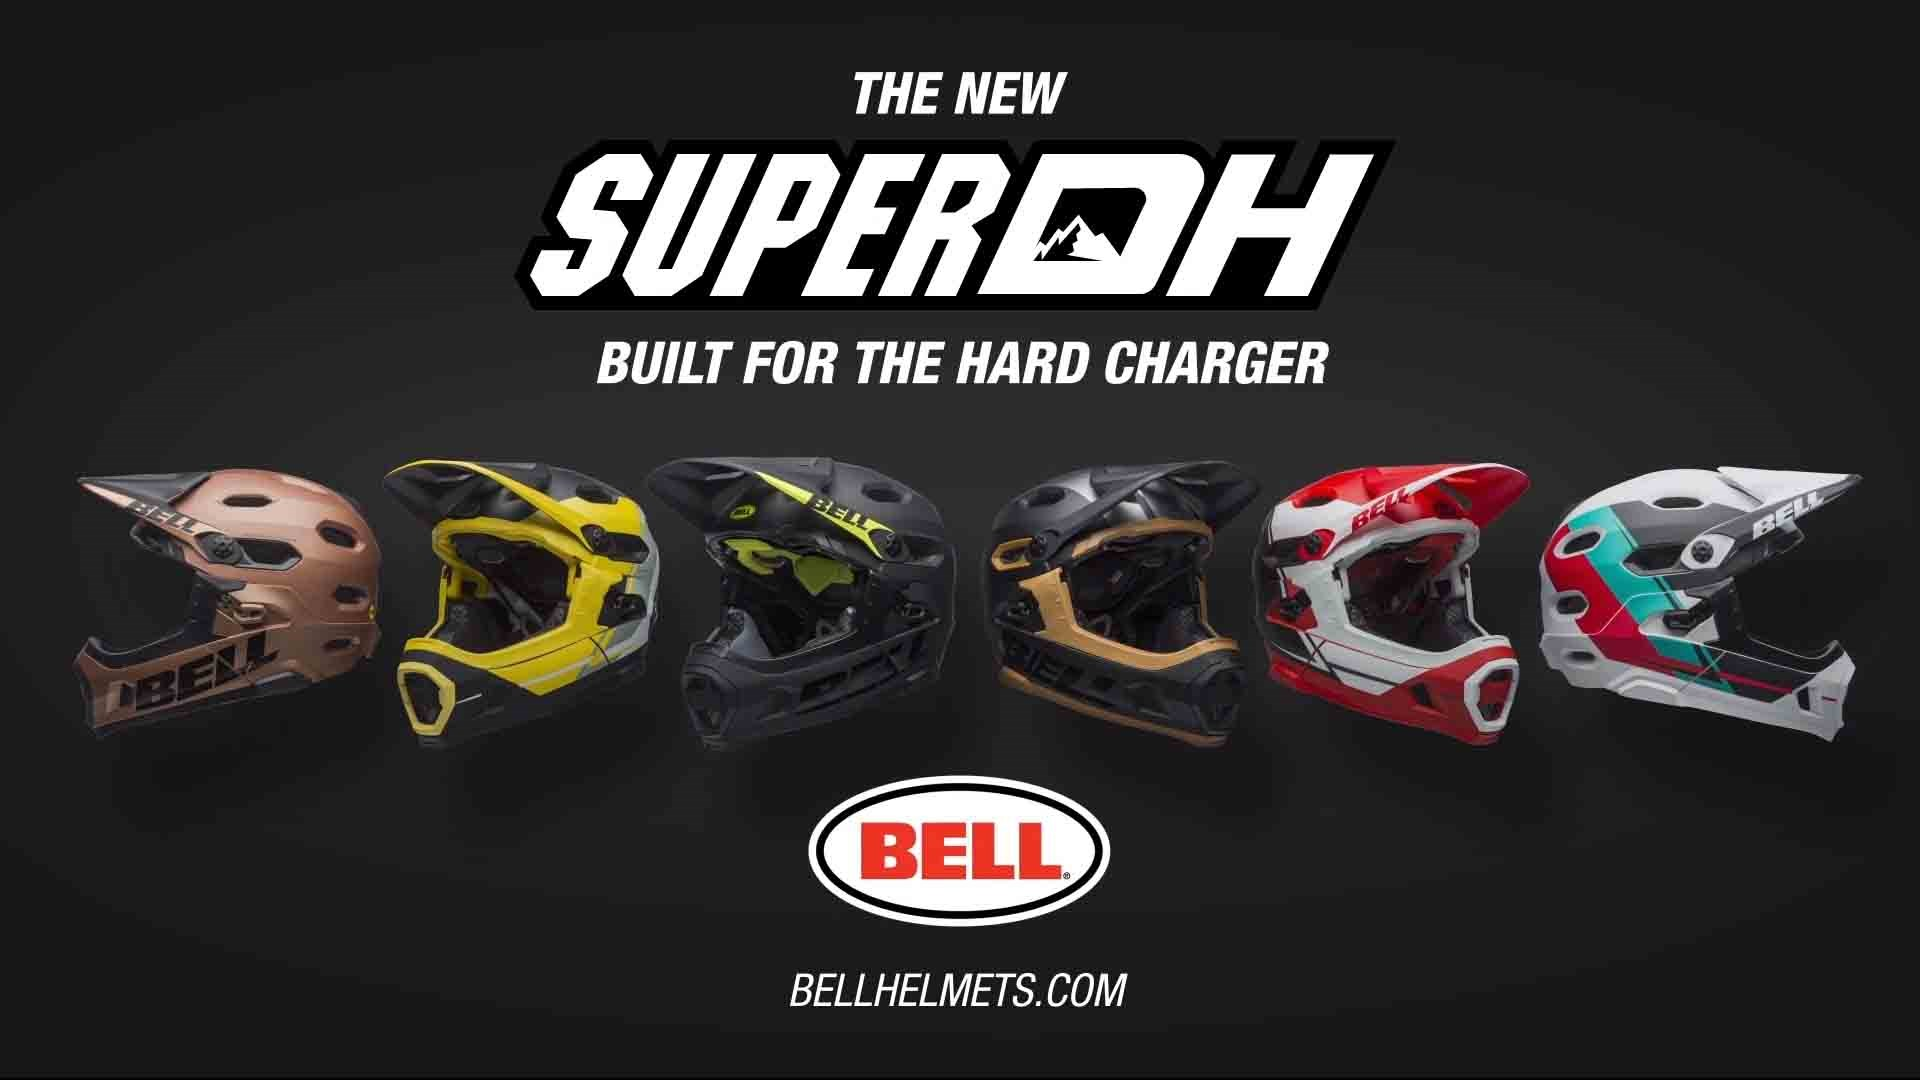 Super DH Tech Video | Bell Helmets